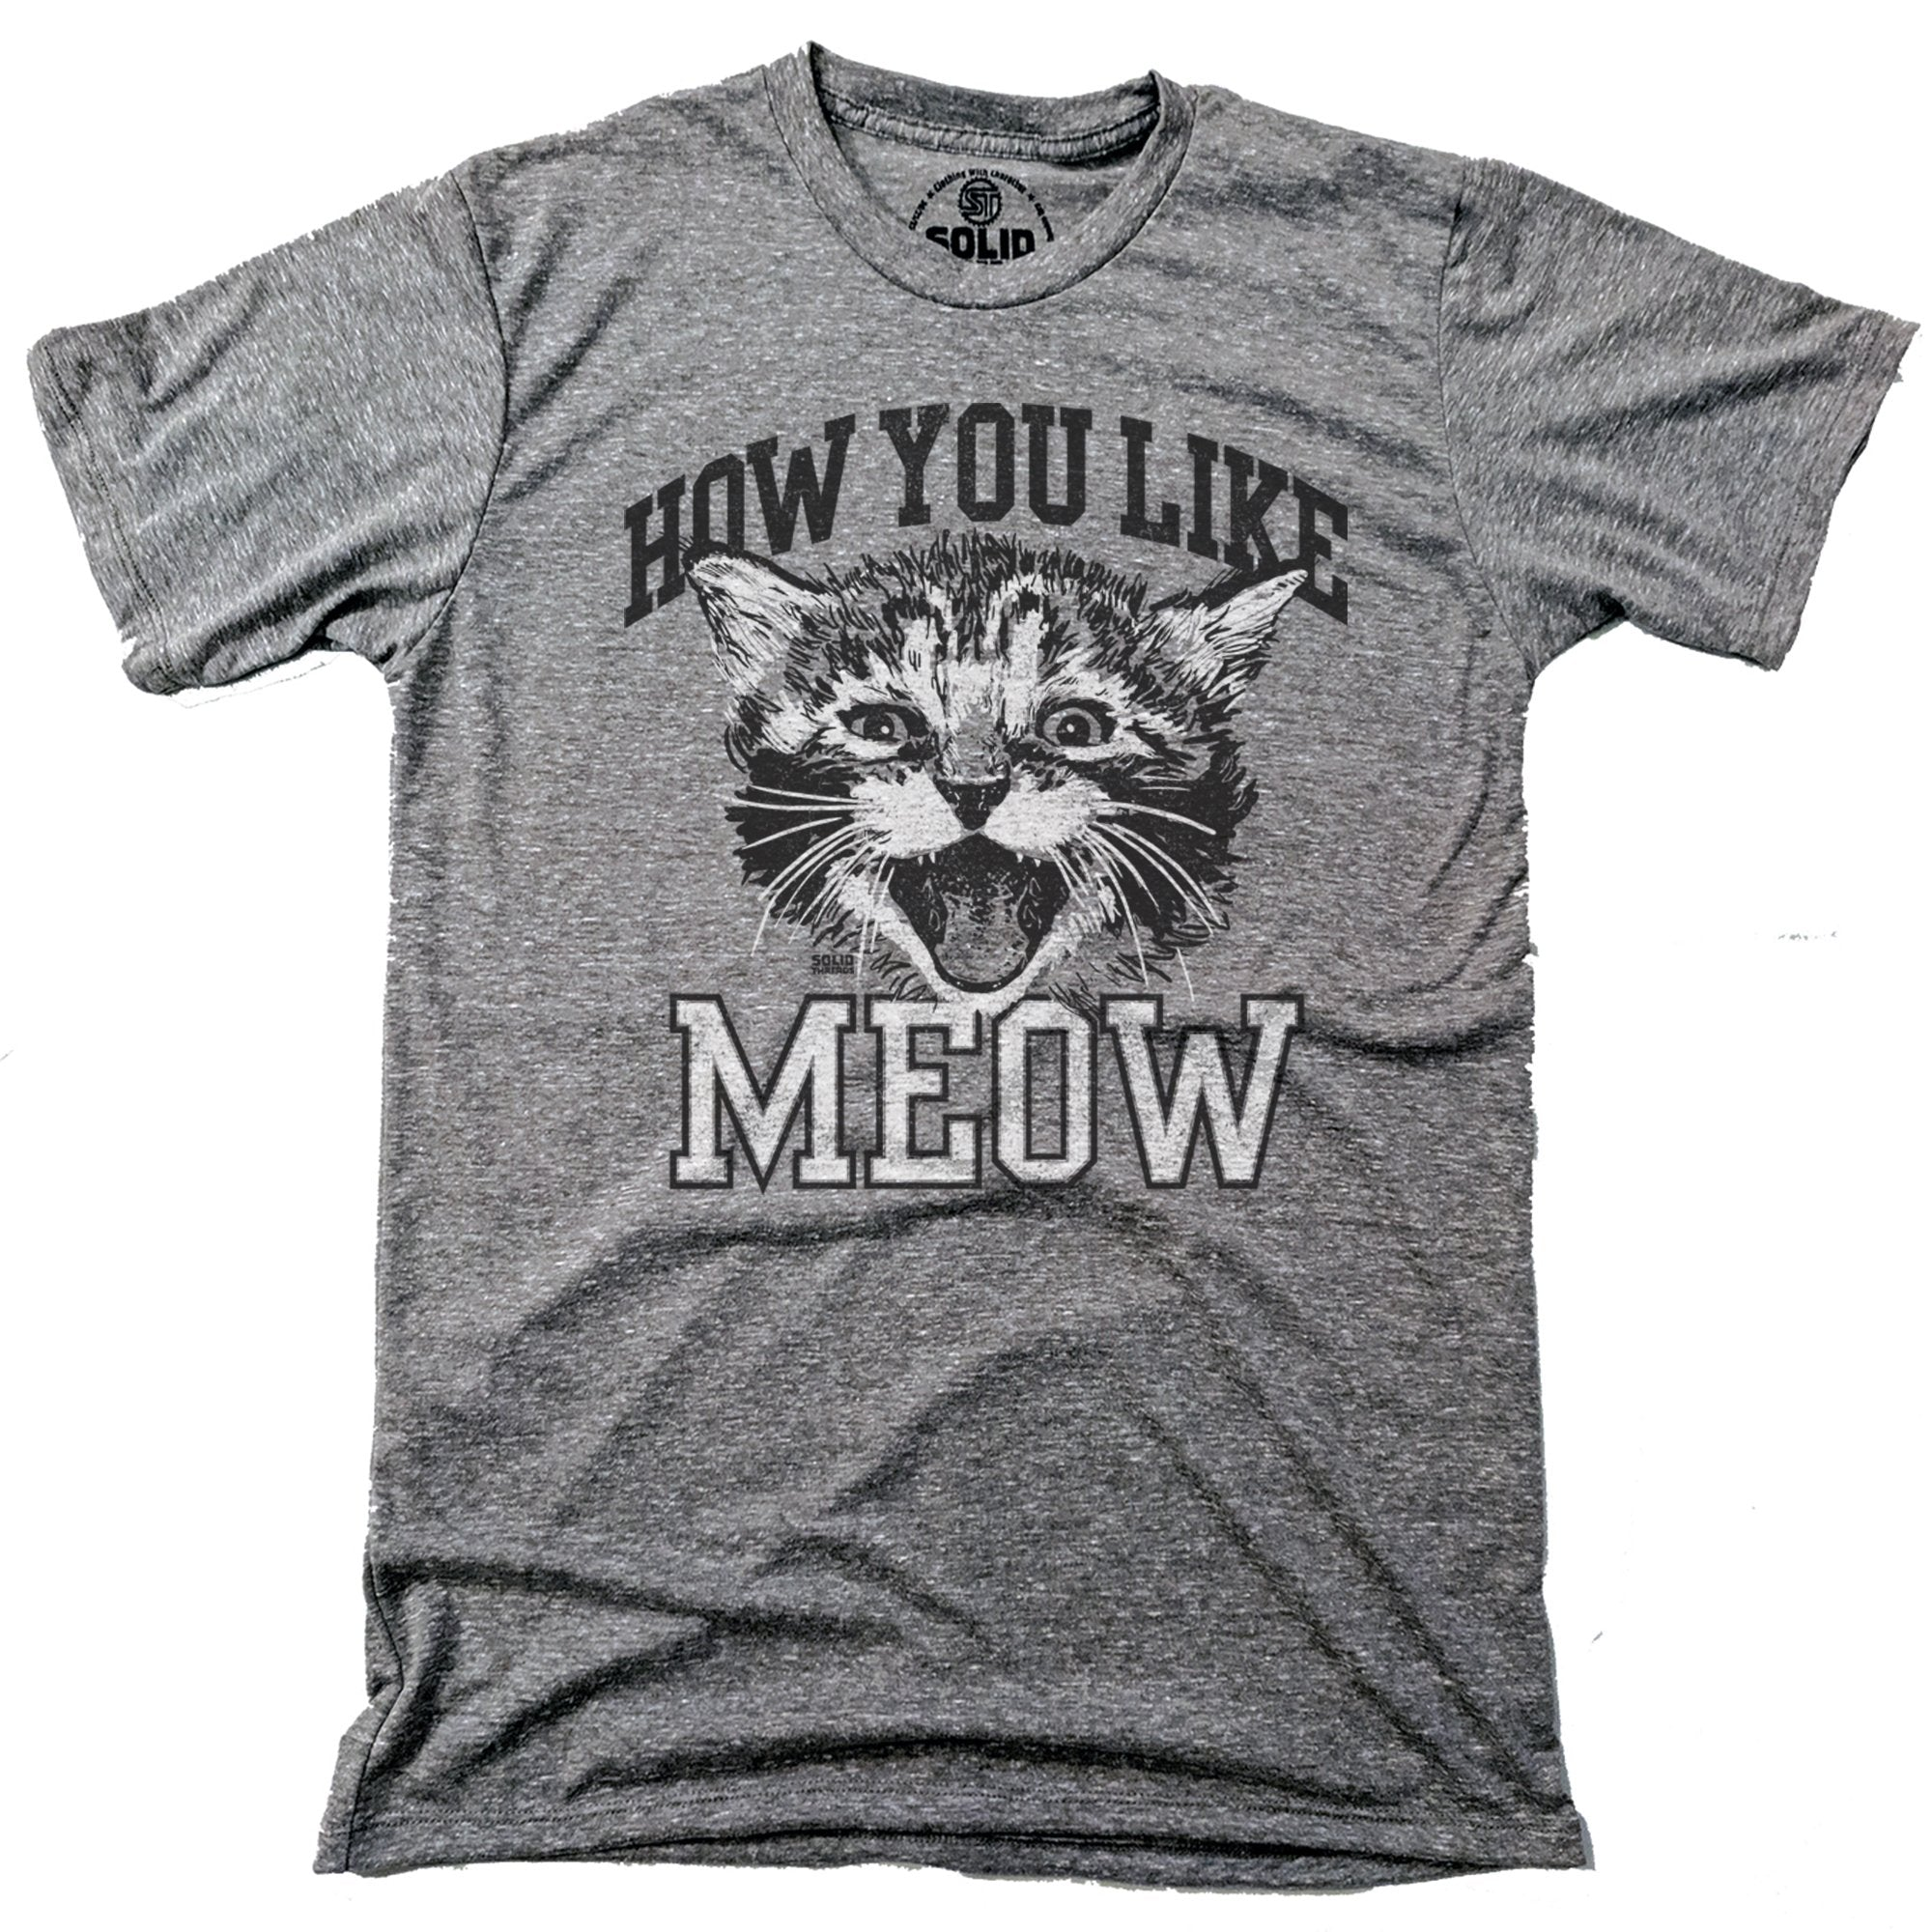 How You Like Meow Vintage Inspired T-shirt with Funny Cat Graphic | SOLID THREADS